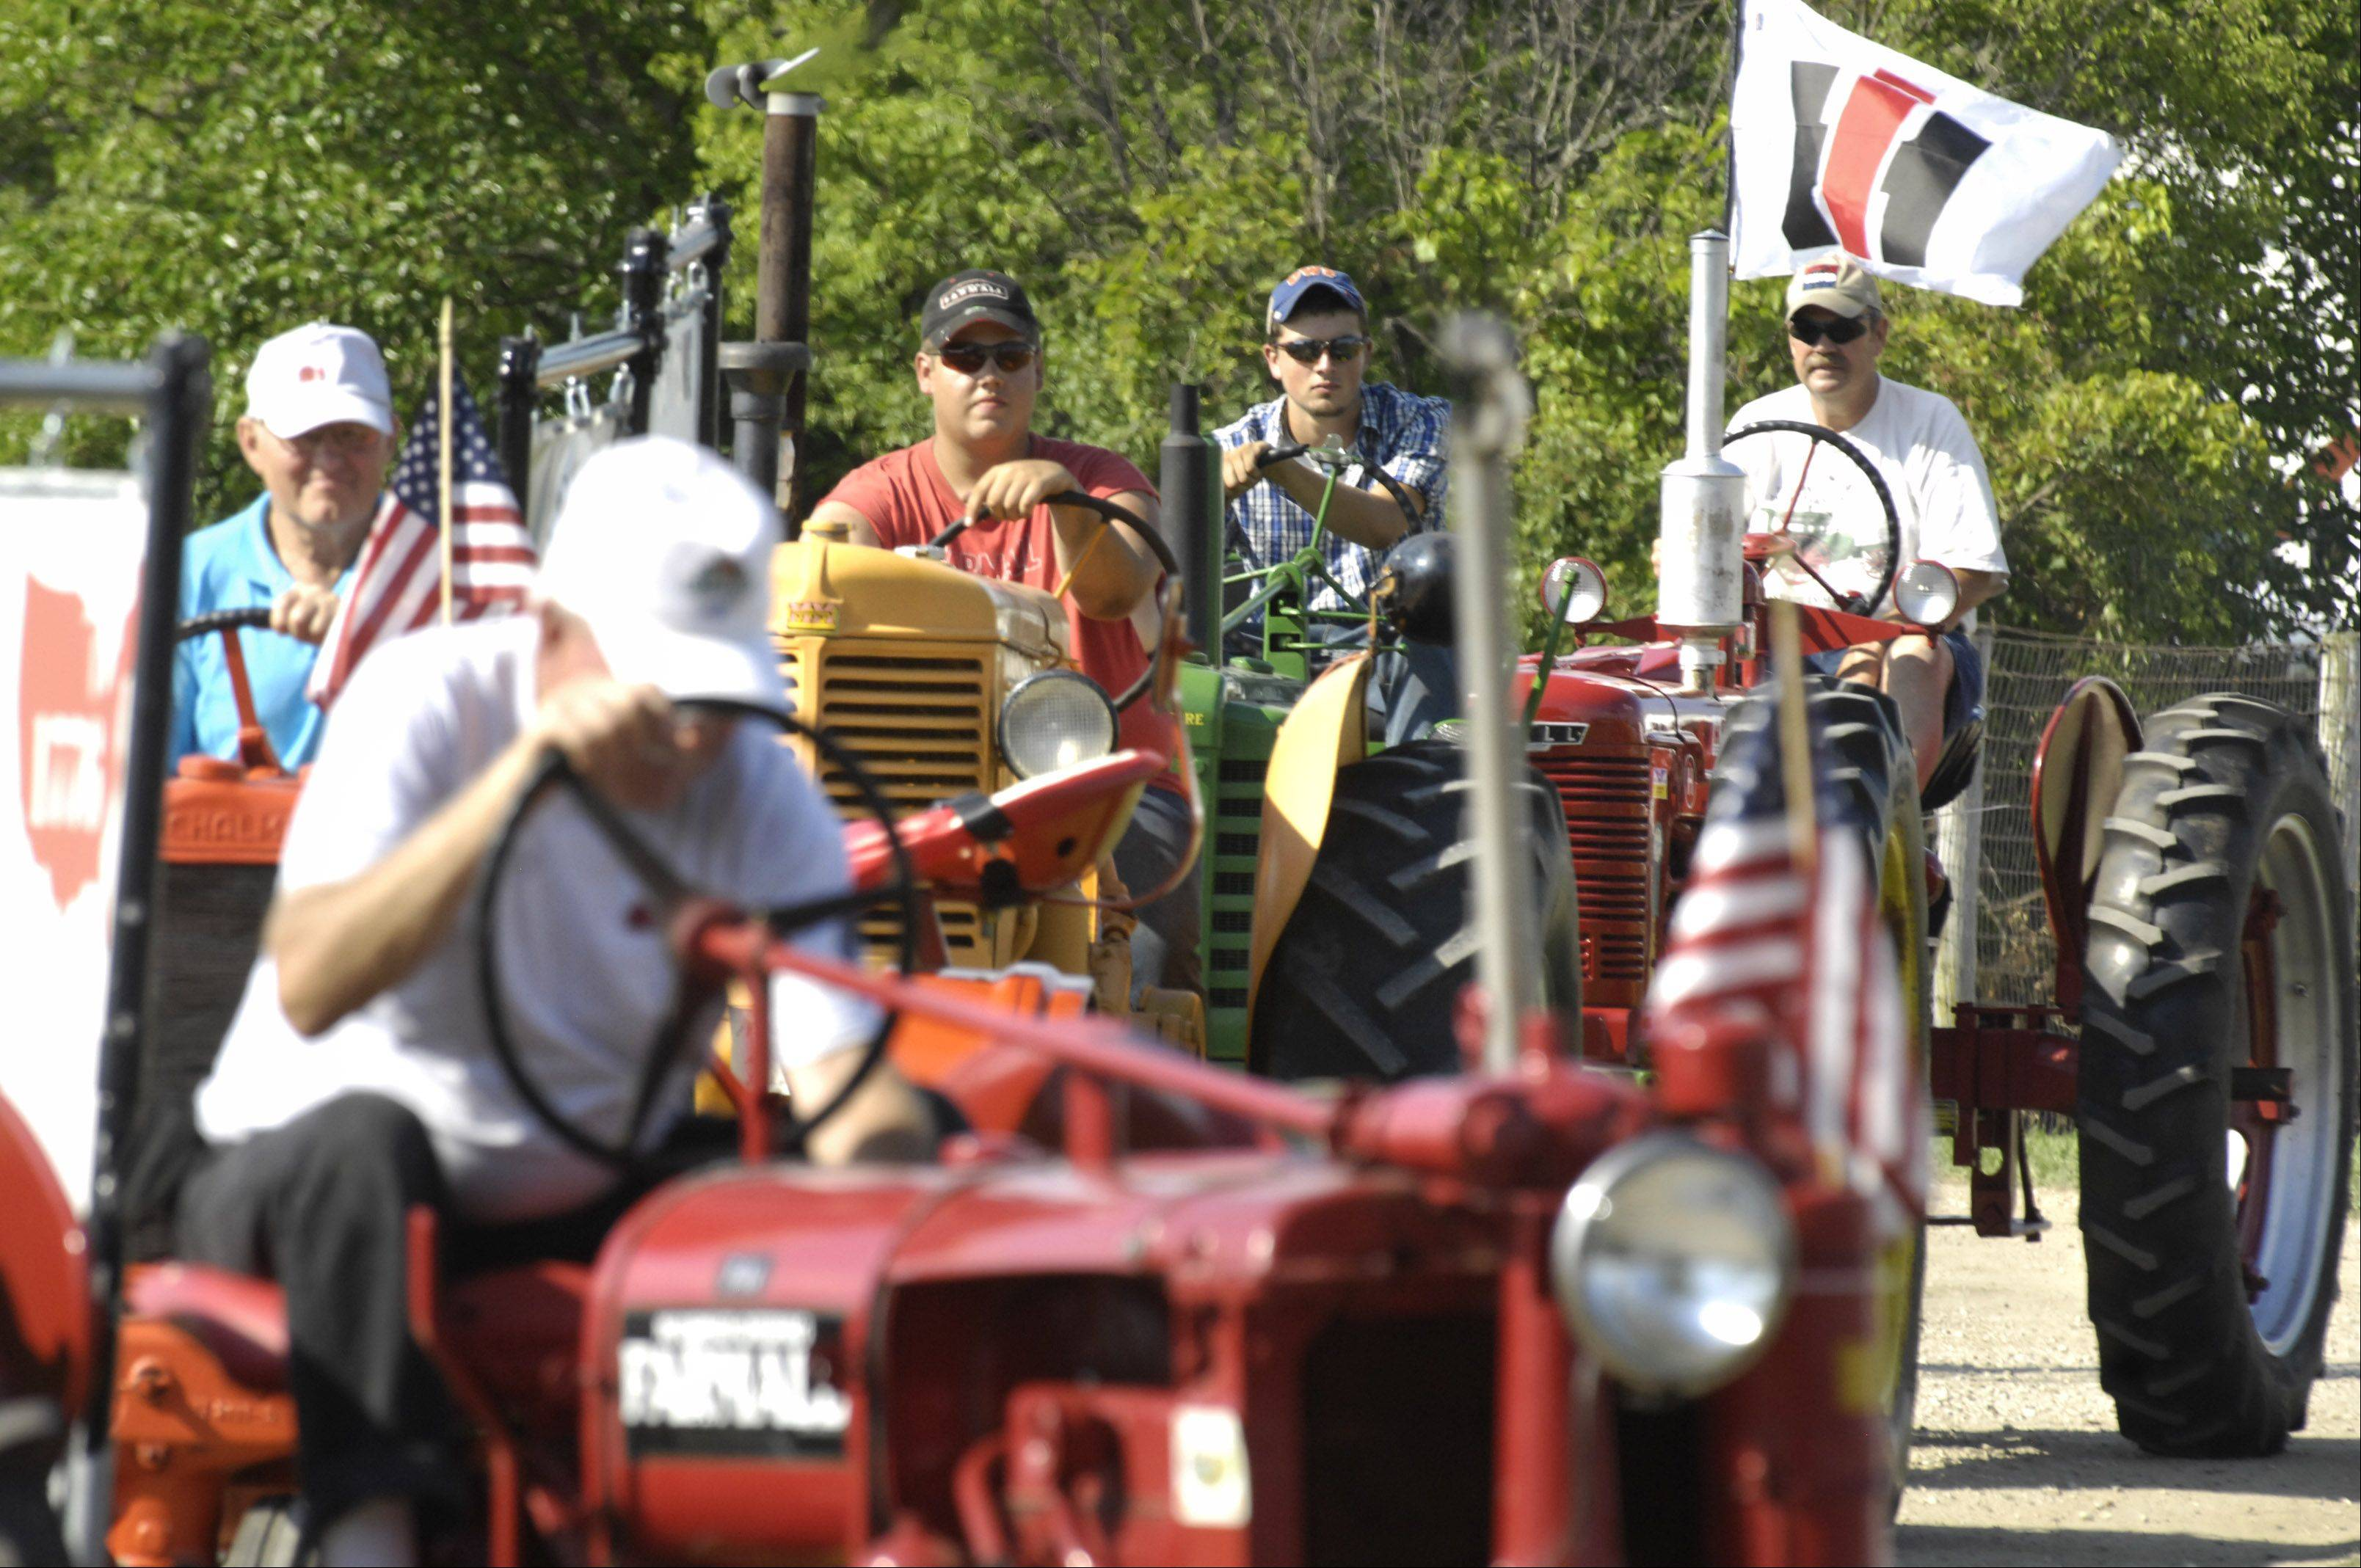 Fifteen antique tractors paraded around the McHenry County Fair in Woodstock Wednesday. They will parade the grounds each afternoon.